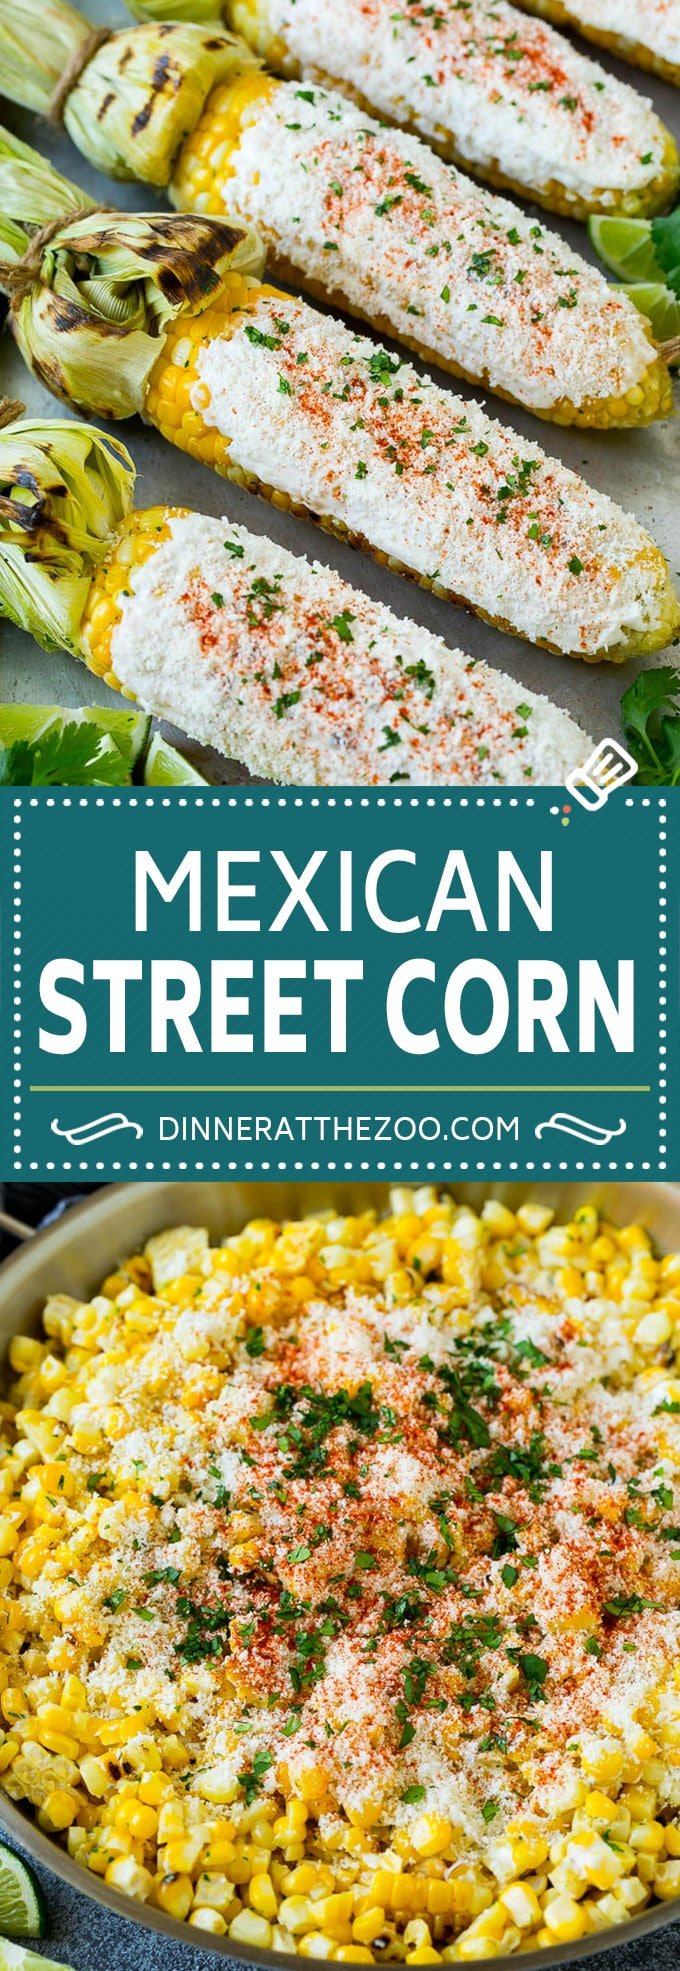 Mexican Street Corn Recipe | Elote Corn | Mexican Corn on the Cob #corn #sidedish #summer #cheese #grilling #dinner #dinneratthezoo